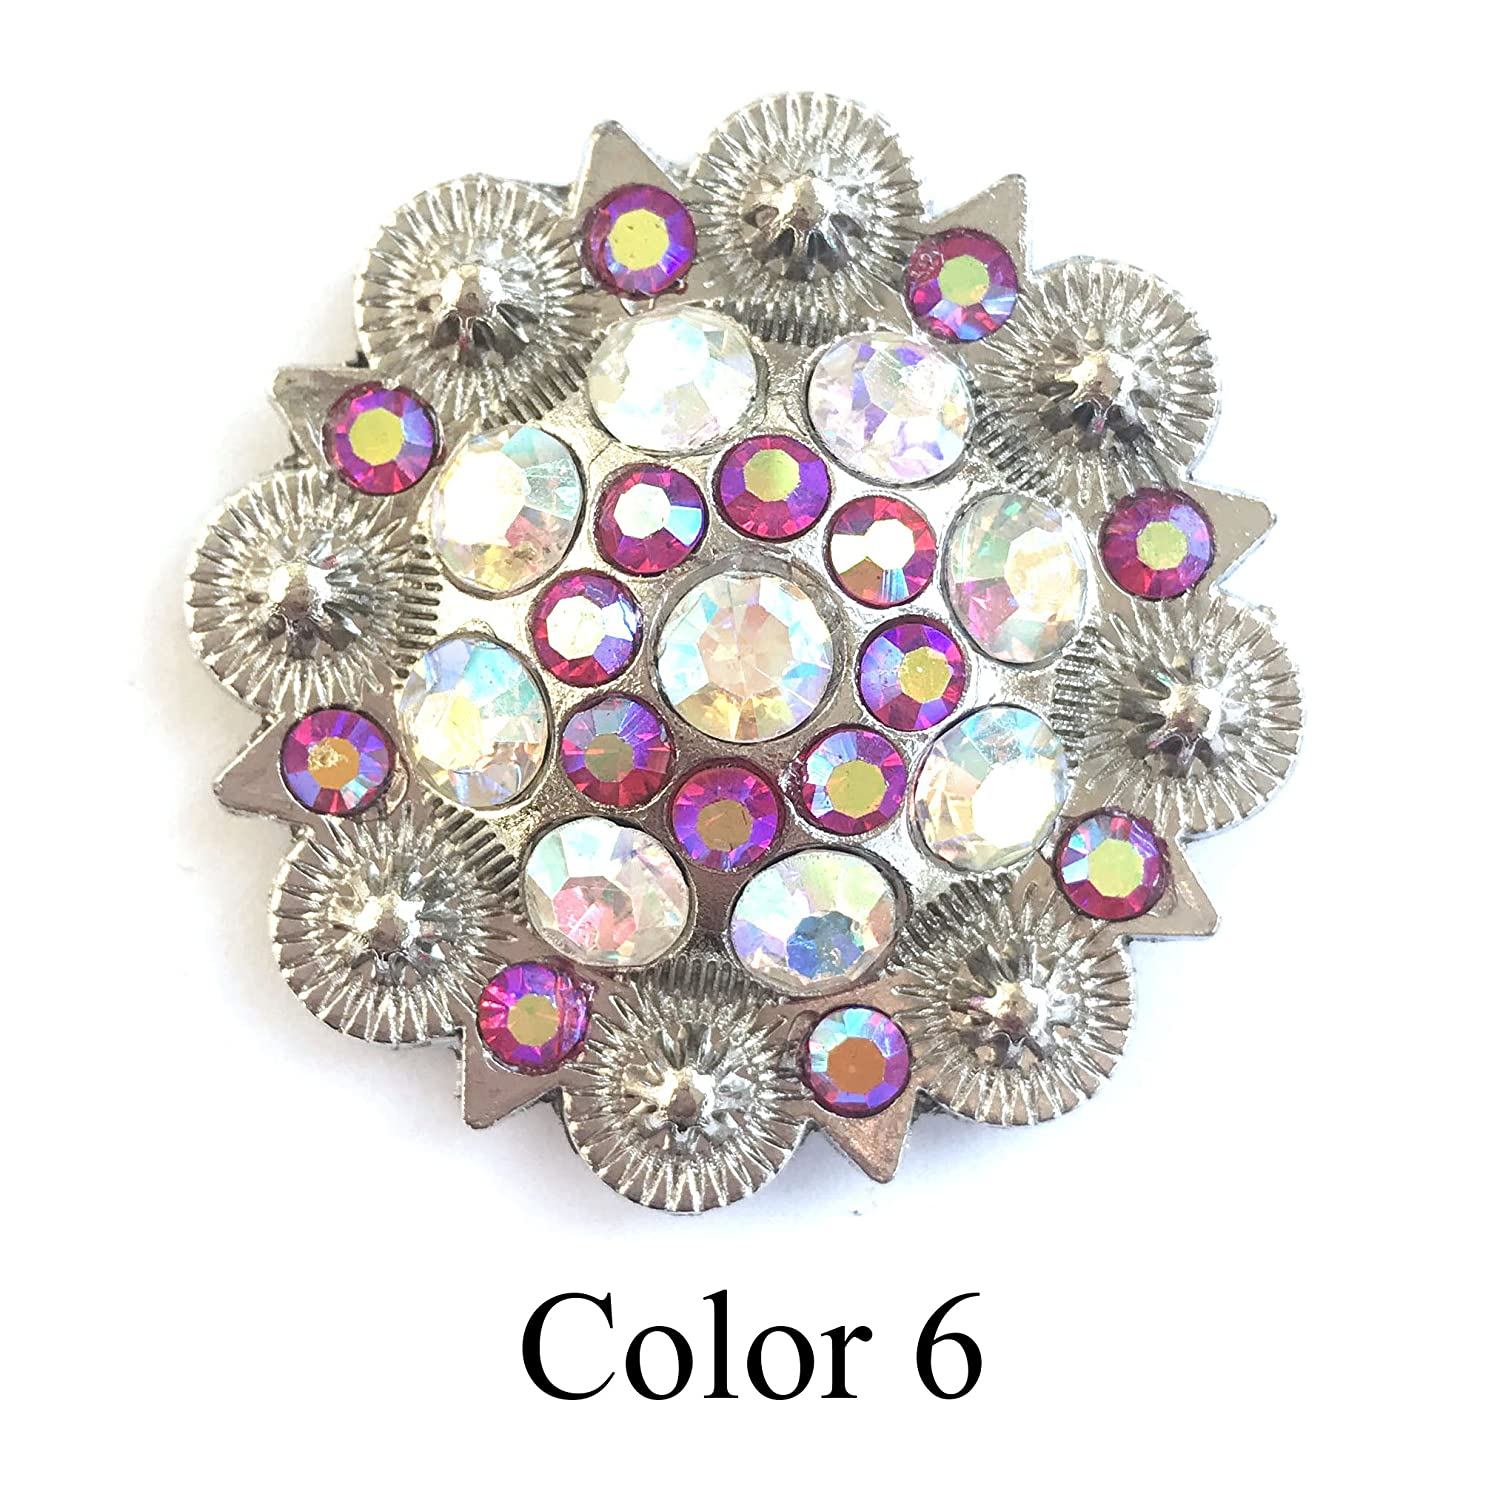 MarryAcc Berry Conchos with Screws Metal Flower Rhinestone Conchos 12 Pieces Color 11